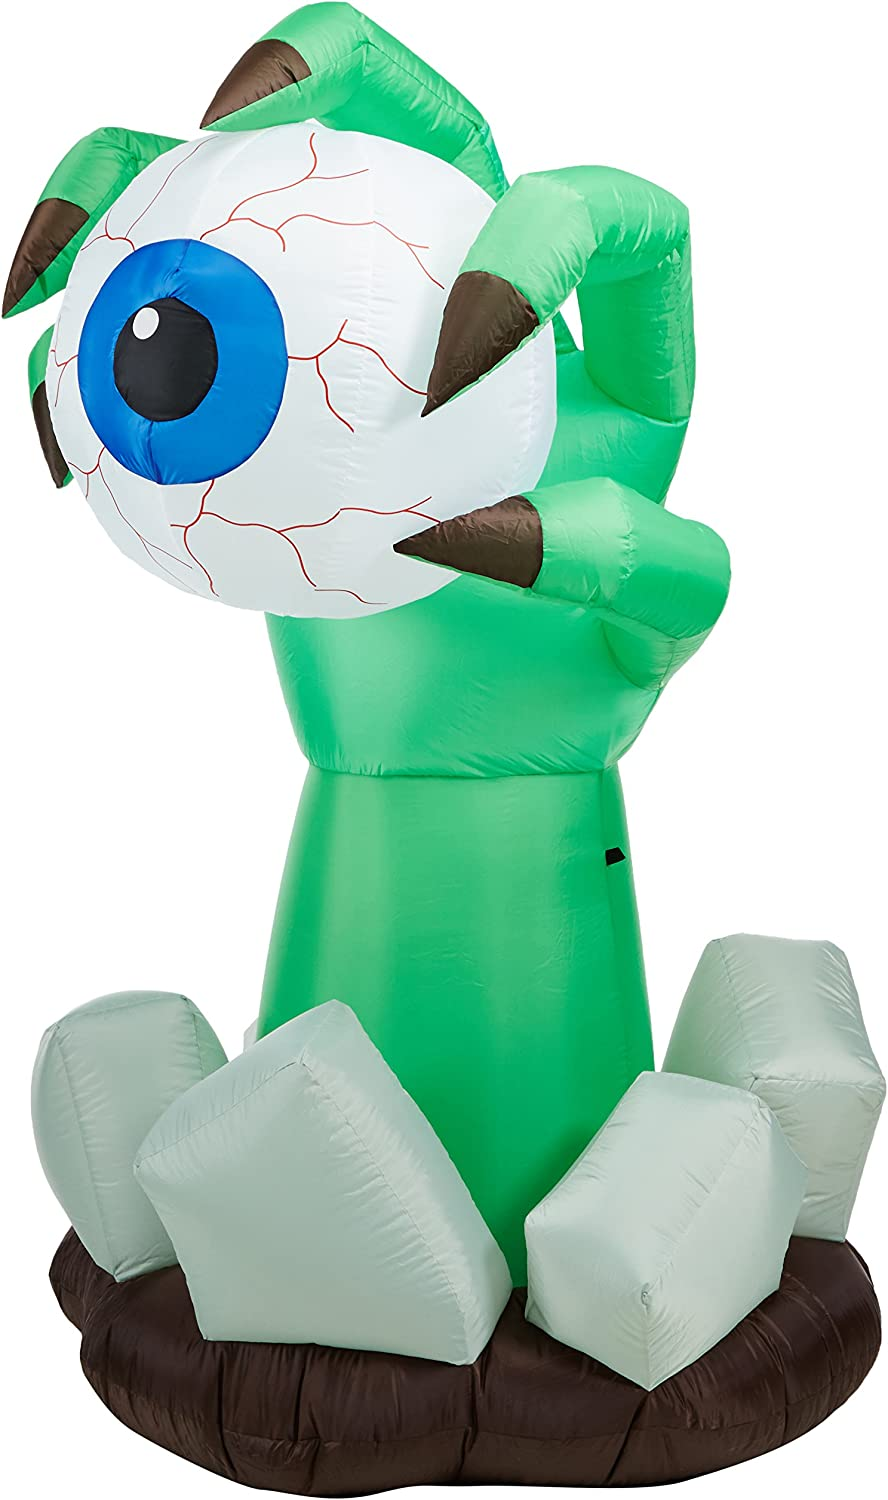 BZB Goods 6 Foot Illuminated Halloween Inflatable Monster Claw with bluee Eyeball Decoration